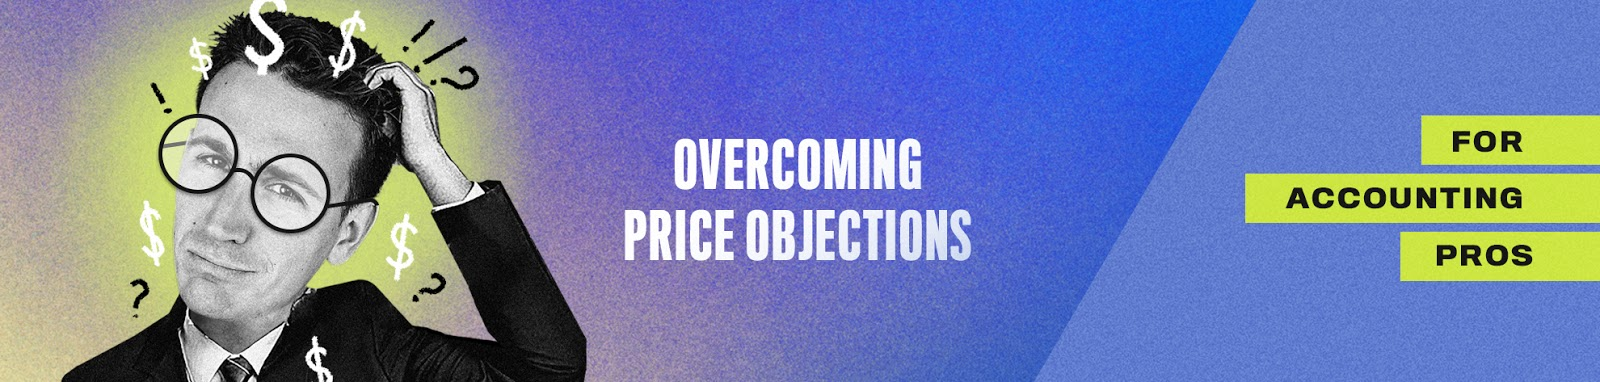 How to Overcome Price Objections For Accounting Pros